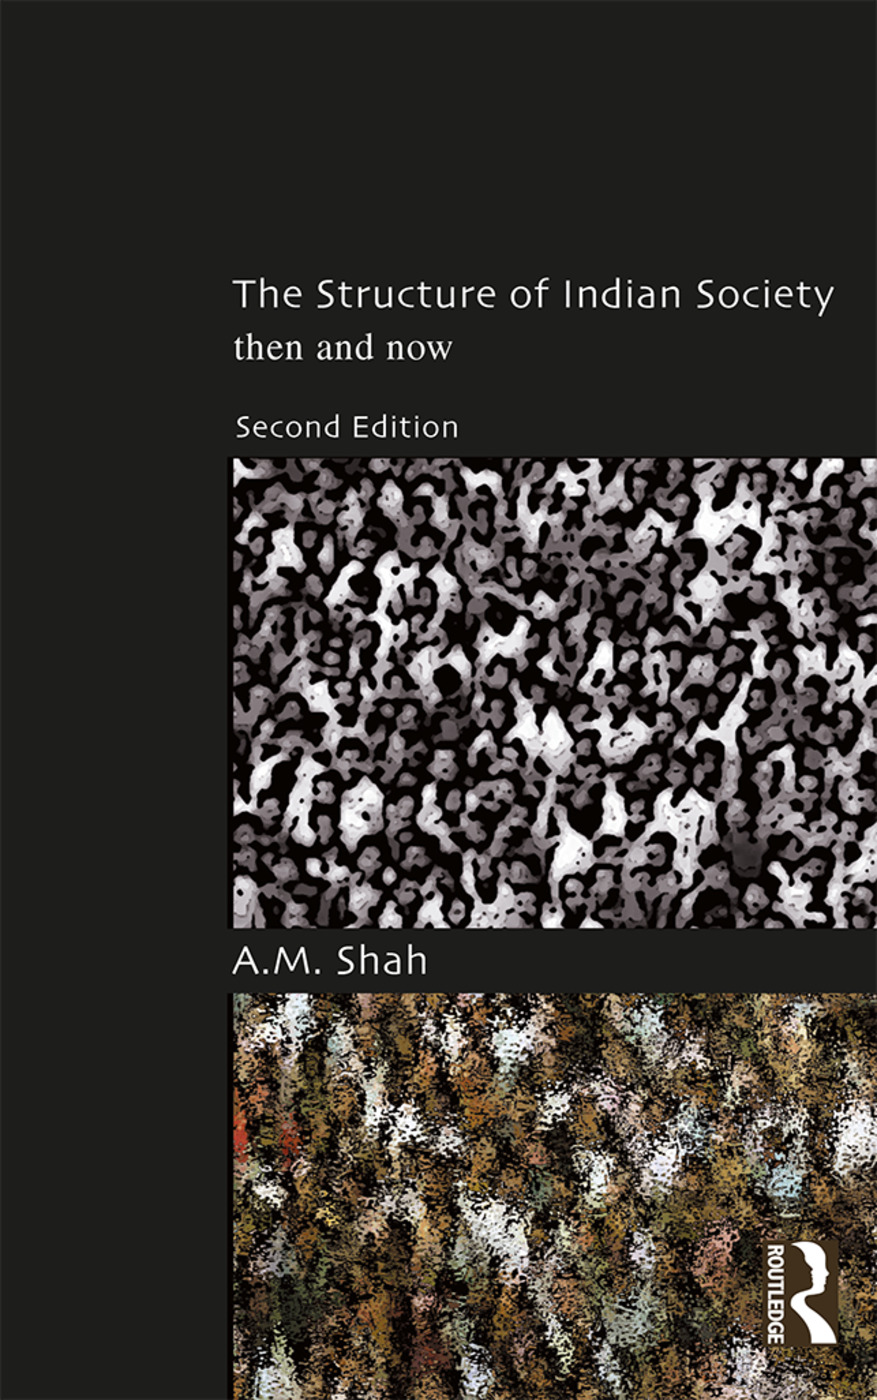 The Structure of Indian Society: Then and Now book cover